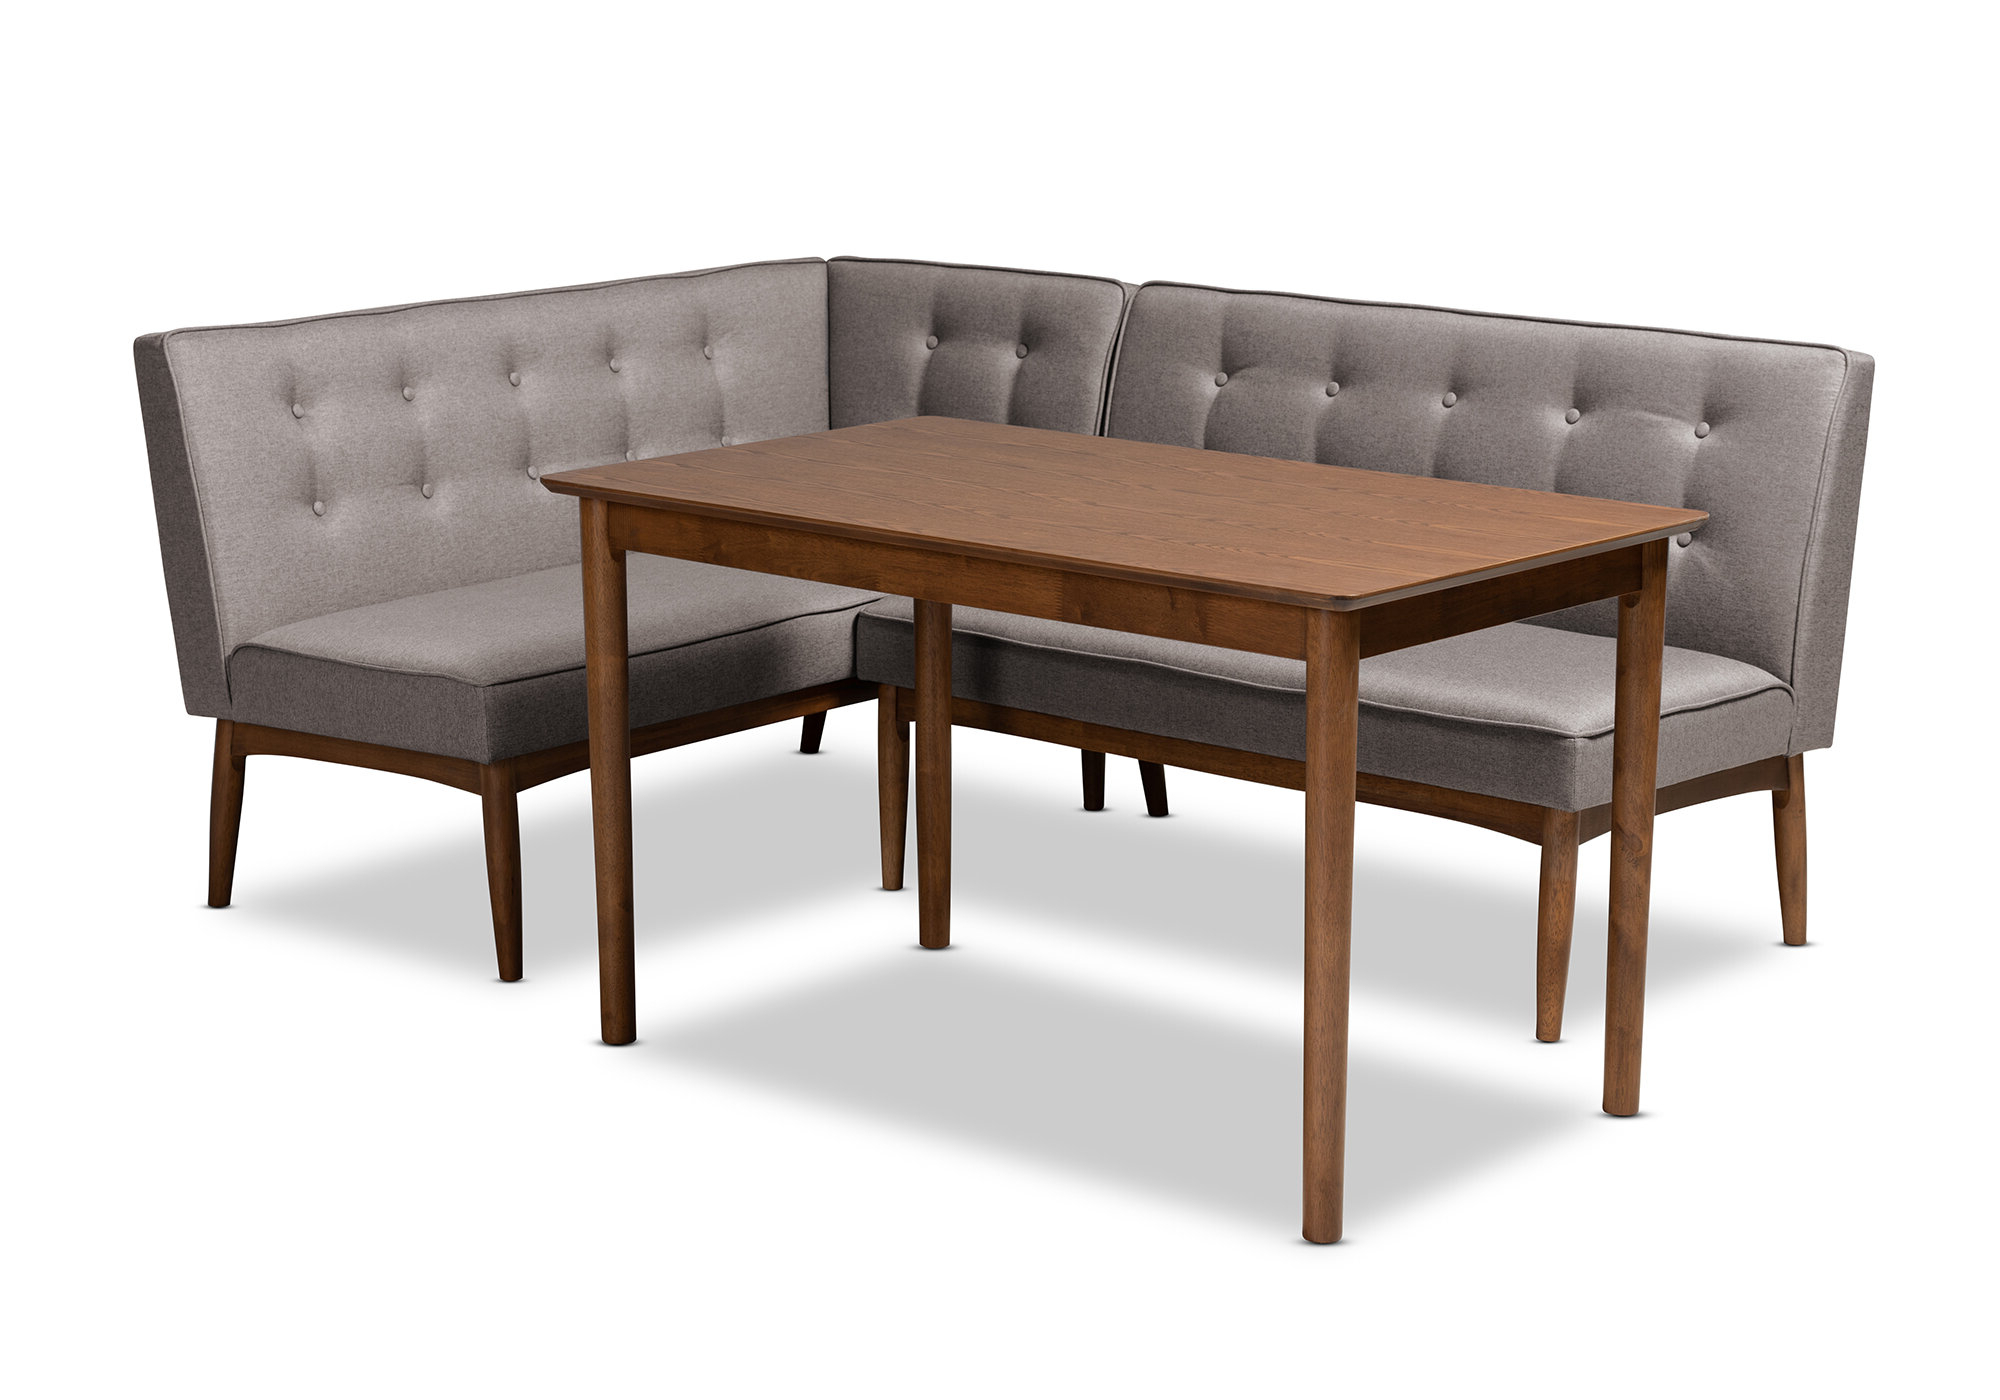 Corrigan Studio Bopp Mid Century Modern Upholstered 3 Piece With Popular Liles 5 Piece Breakfast Nook Dining Sets (View 4 of 25)